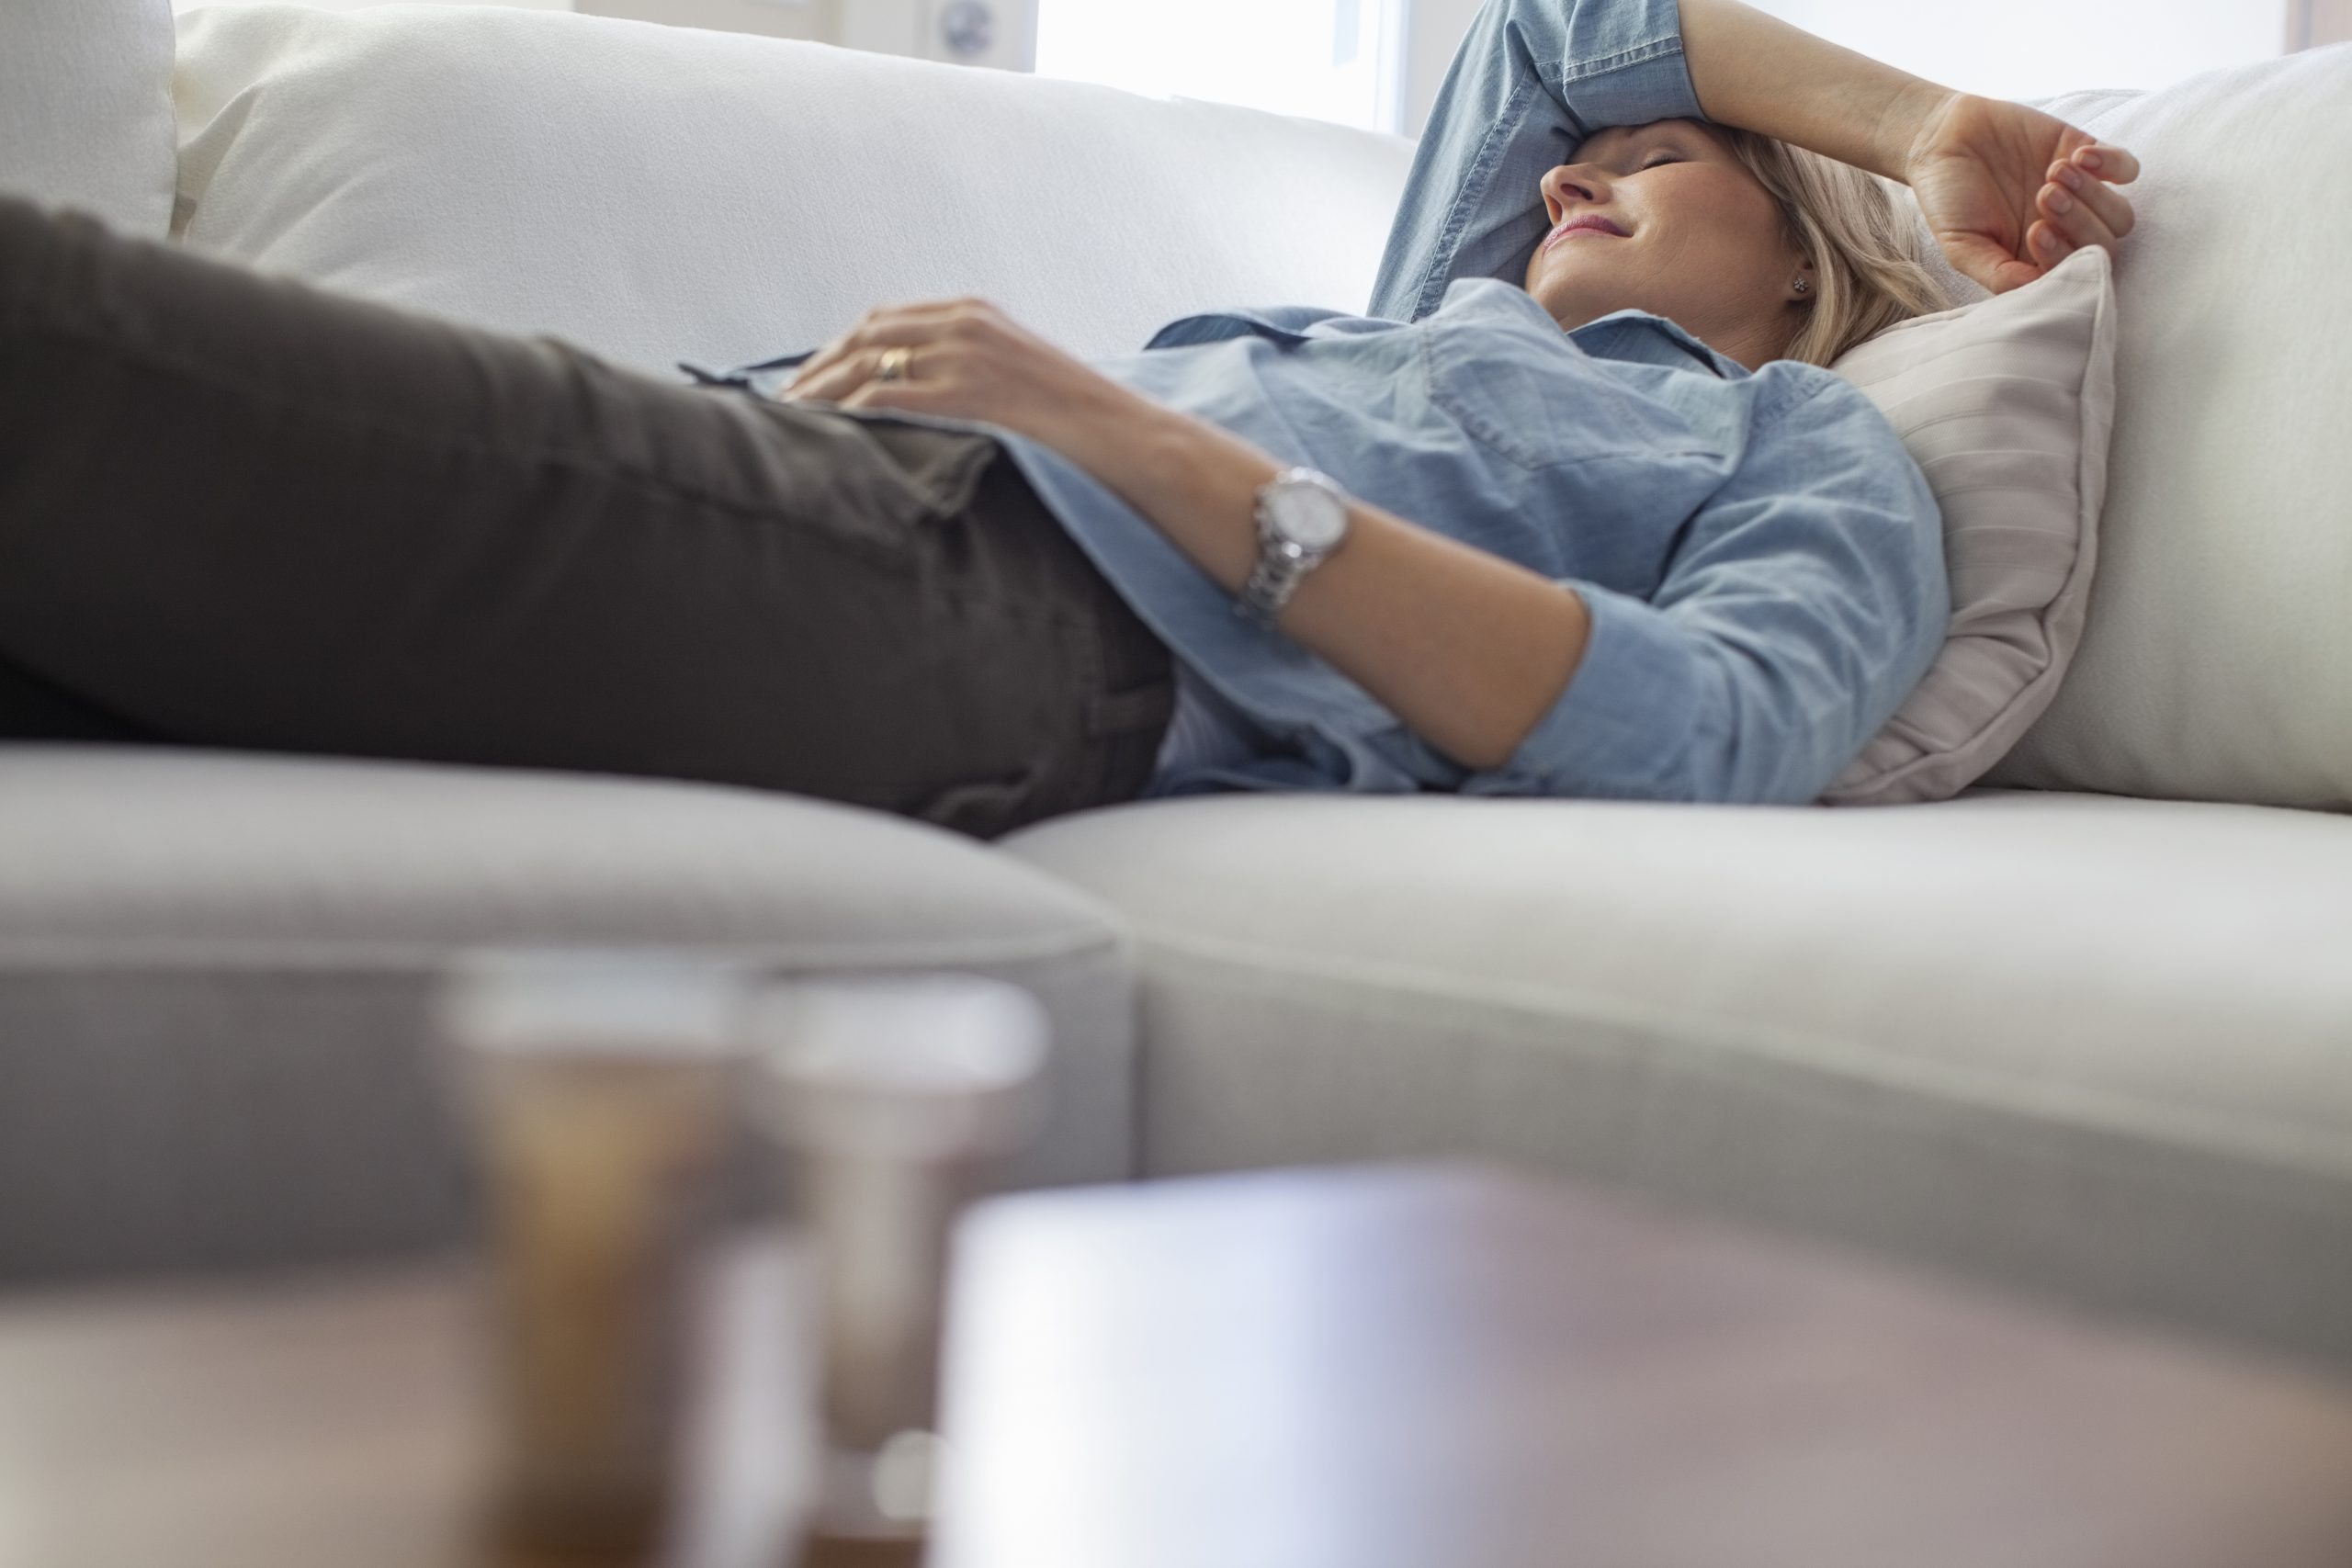 Weekly naps halve heart and stroke risk